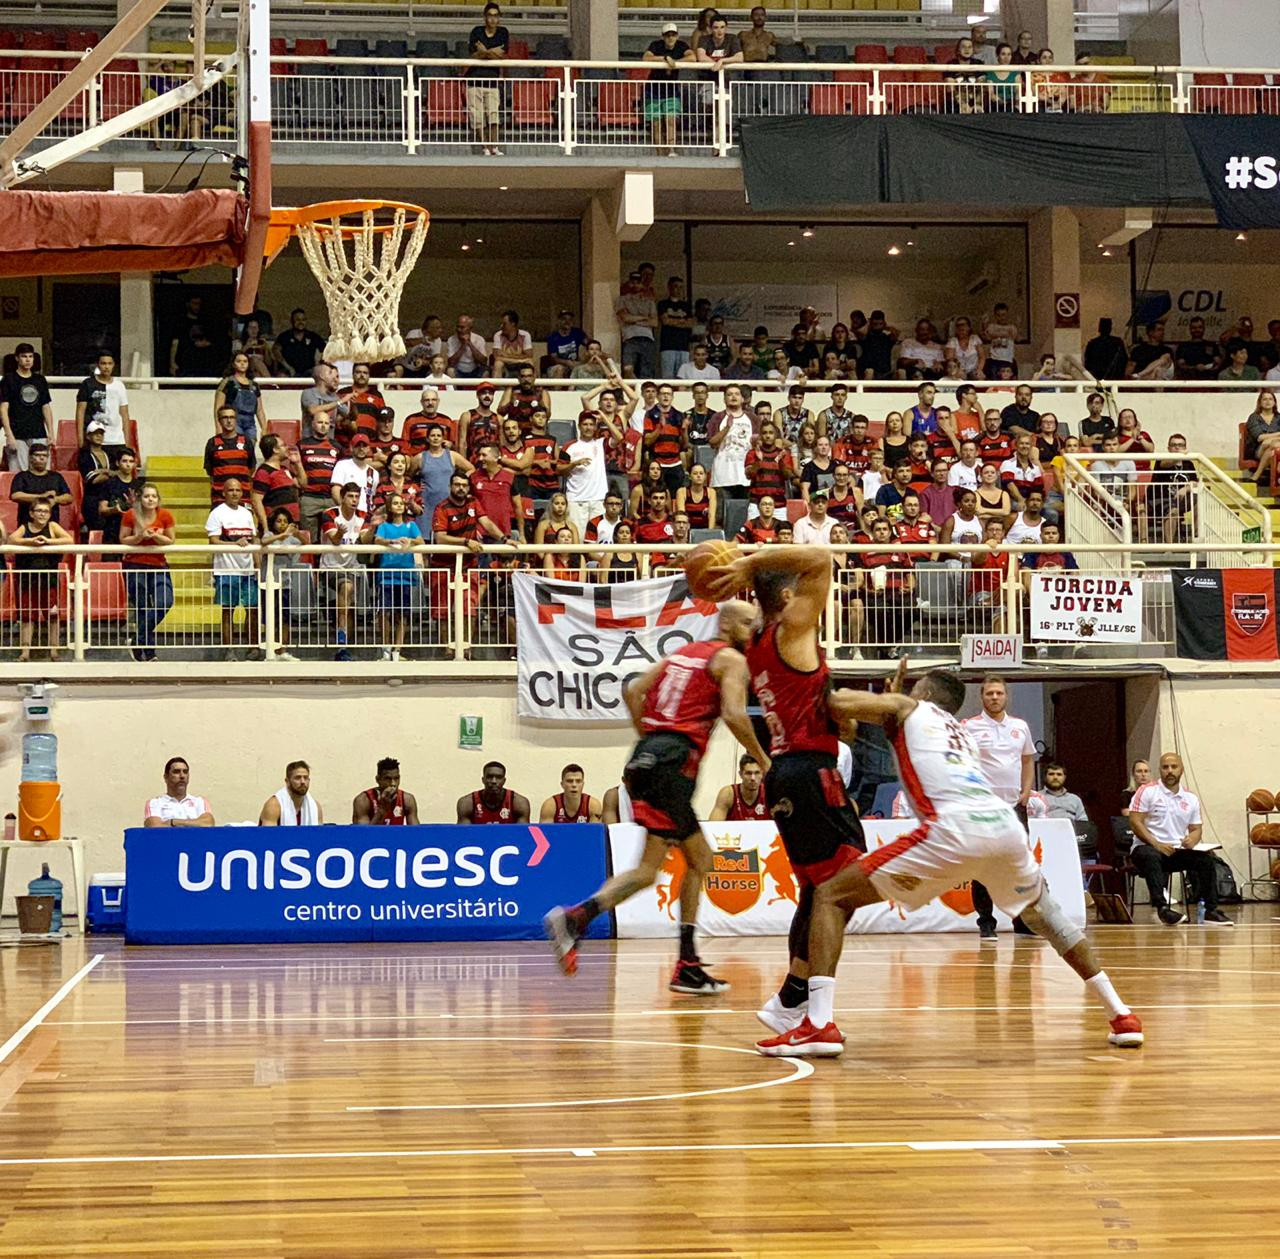 Joinville x Flamengo - NBB 11 - 24/01/2019